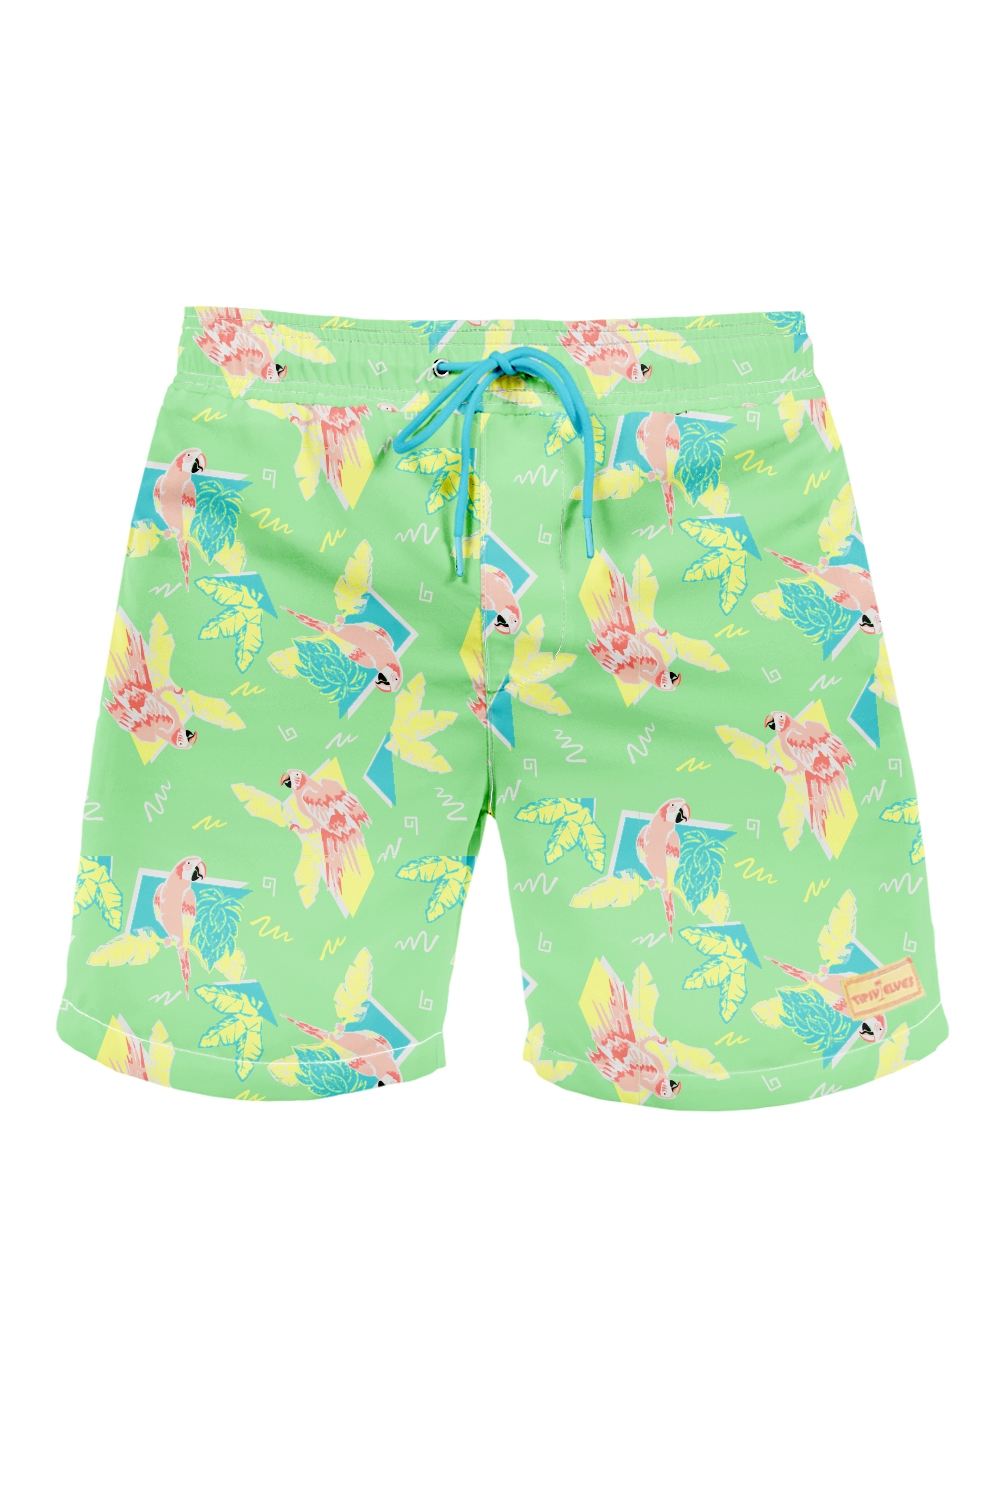 Polly Wanna Party Swim Trunks